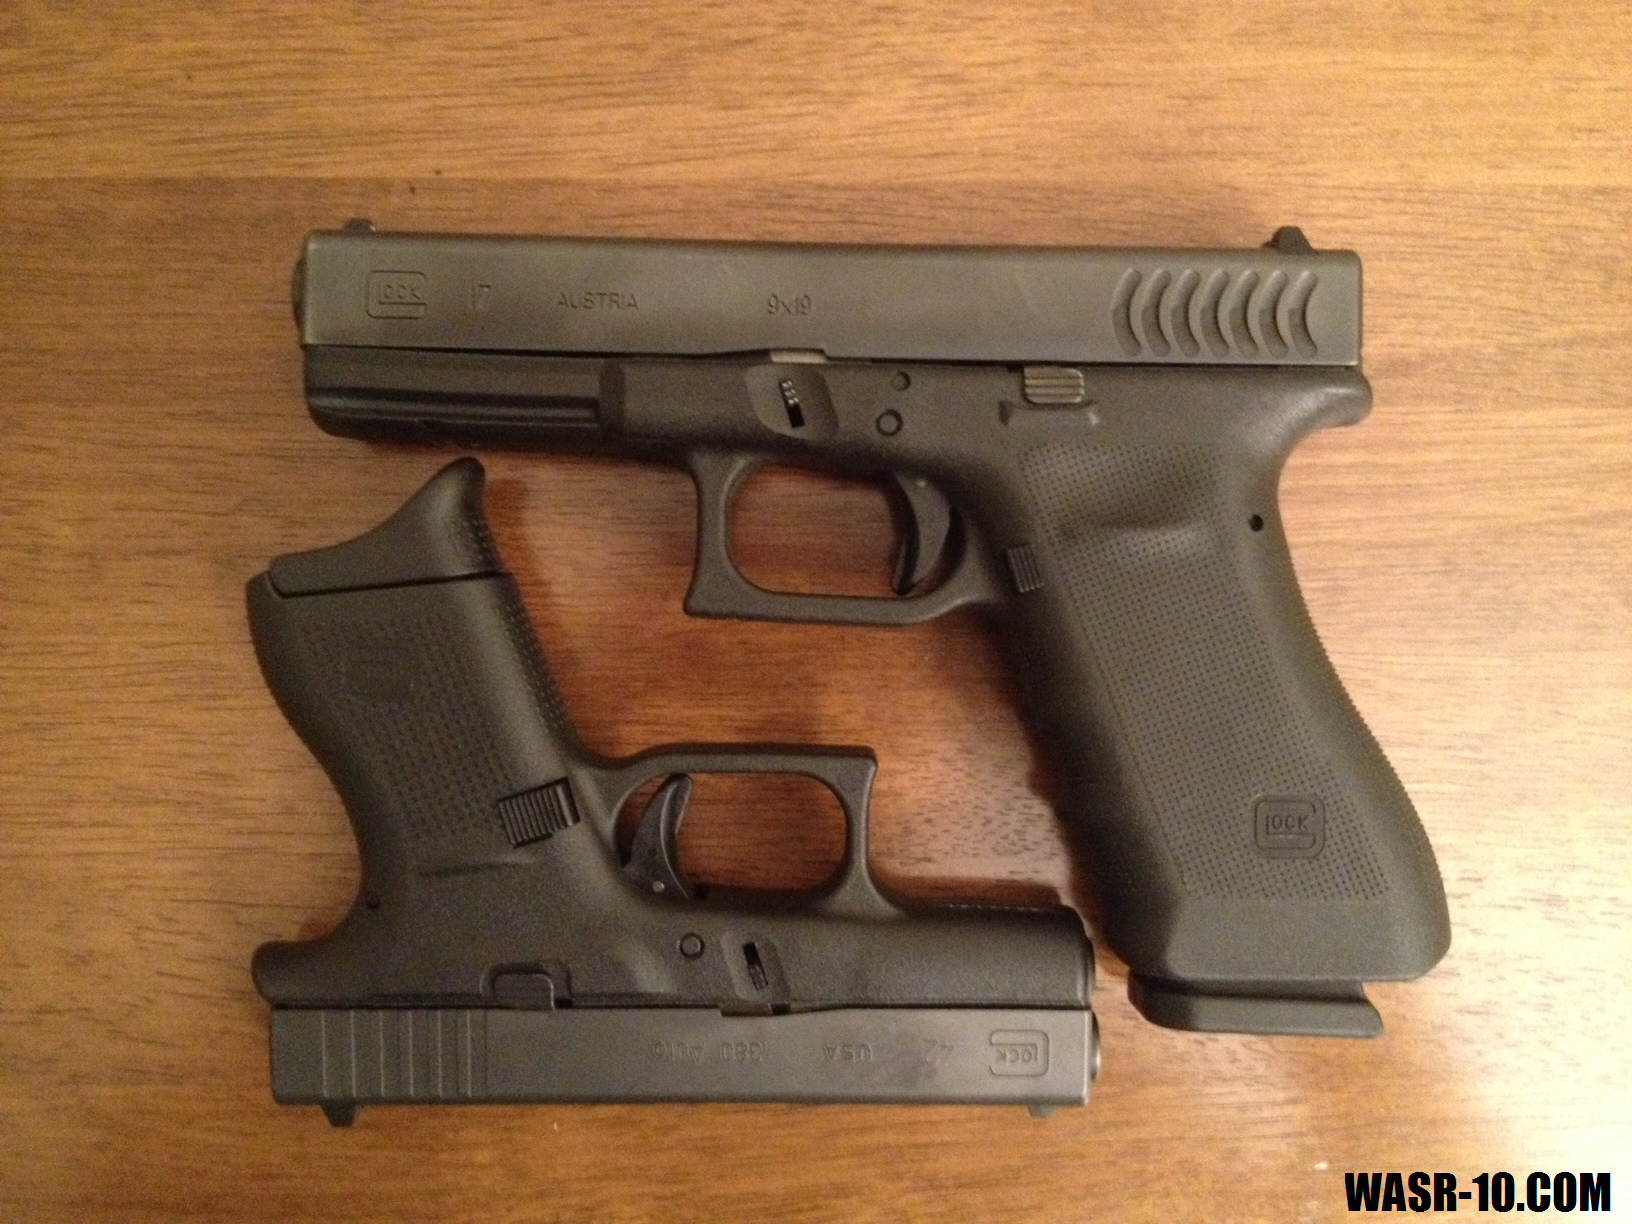 Glock 42 - Ain't this the cutest little thing you 'ever ...